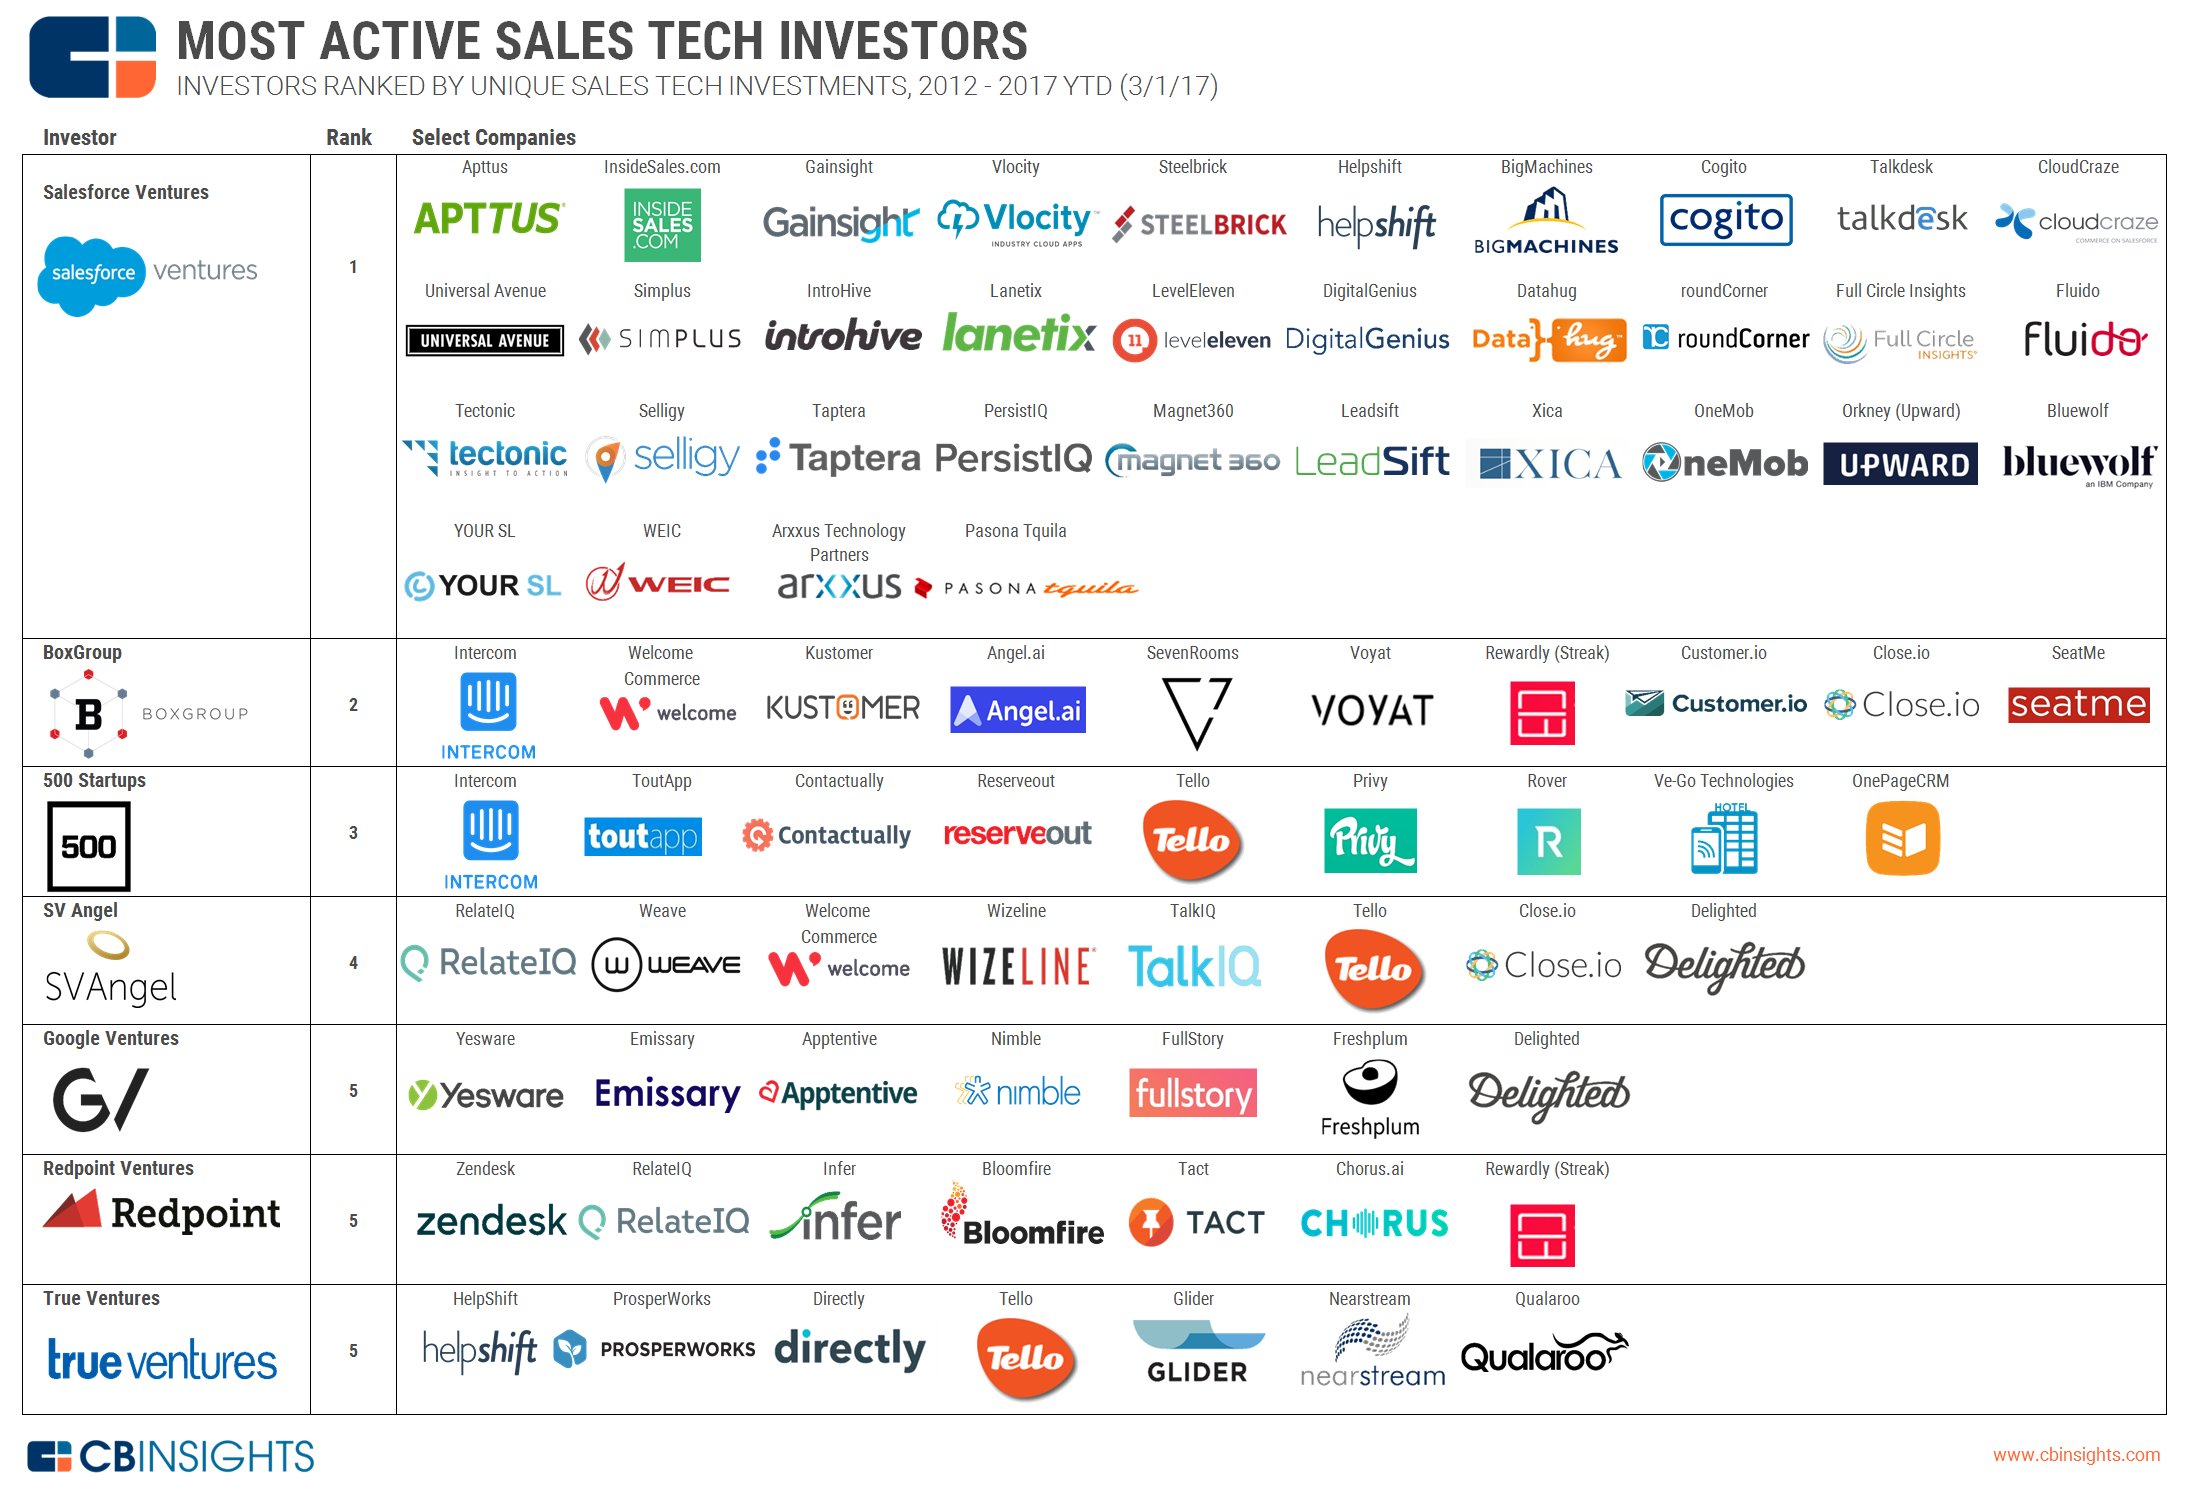 ca6a2c74cc6a The Most Active Investors In Sales Tech In One Infographic